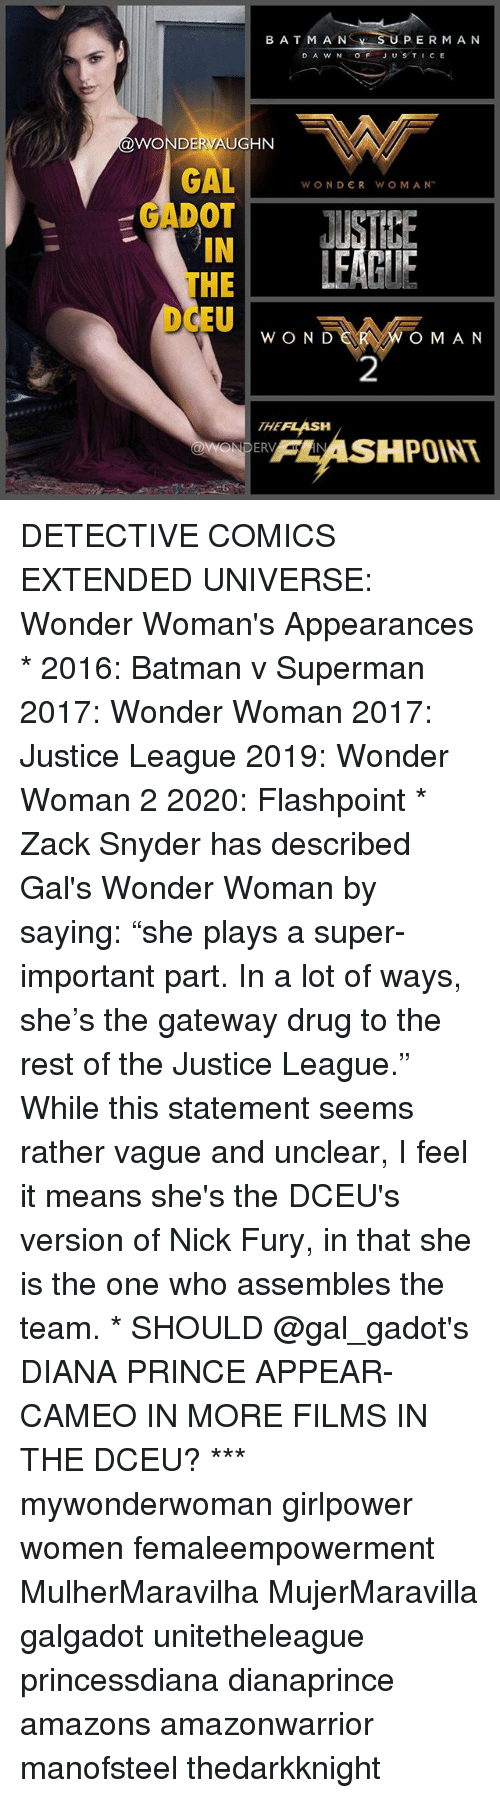 """nick fury: BATM A NS  SU  PERMA N  D A W N OFJUSTICE  @WONDERVAUGHN  GALWONDER WO M AM  GADOT  IN  THE  EUw O N  OM AN  2  THEFLASH  FLASHPOINT  95 DETECTIVE COMICS EXTENDED UNIVERSE: Wonder Woman's Appearances * 2016: Batman v Superman 2017: Wonder Woman 2017: Justice League 2019: Wonder Woman 2 2020: Flashpoint * Zack Snyder has described Gal's Wonder Woman by saying: """"she plays a super-important part. In a lot of ways, she's the gateway drug to the rest of the Justice League."""" While this statement seems rather vague and unclear, I feel it means she's the DCEU's version of Nick Fury, in that she is the one who assembles the team. * SHOULD @gal_gadot's DIANA PRINCE APPEAR-CAMEO IN MORE FILMS IN THE DCEU? *** mywonderwoman girlpower women femaleempowerment MulherMaravilha MujerMaravilla galgadot unitetheleague princessdiana dianaprince amazons amazonwarrior manofsteel thedarkknight"""